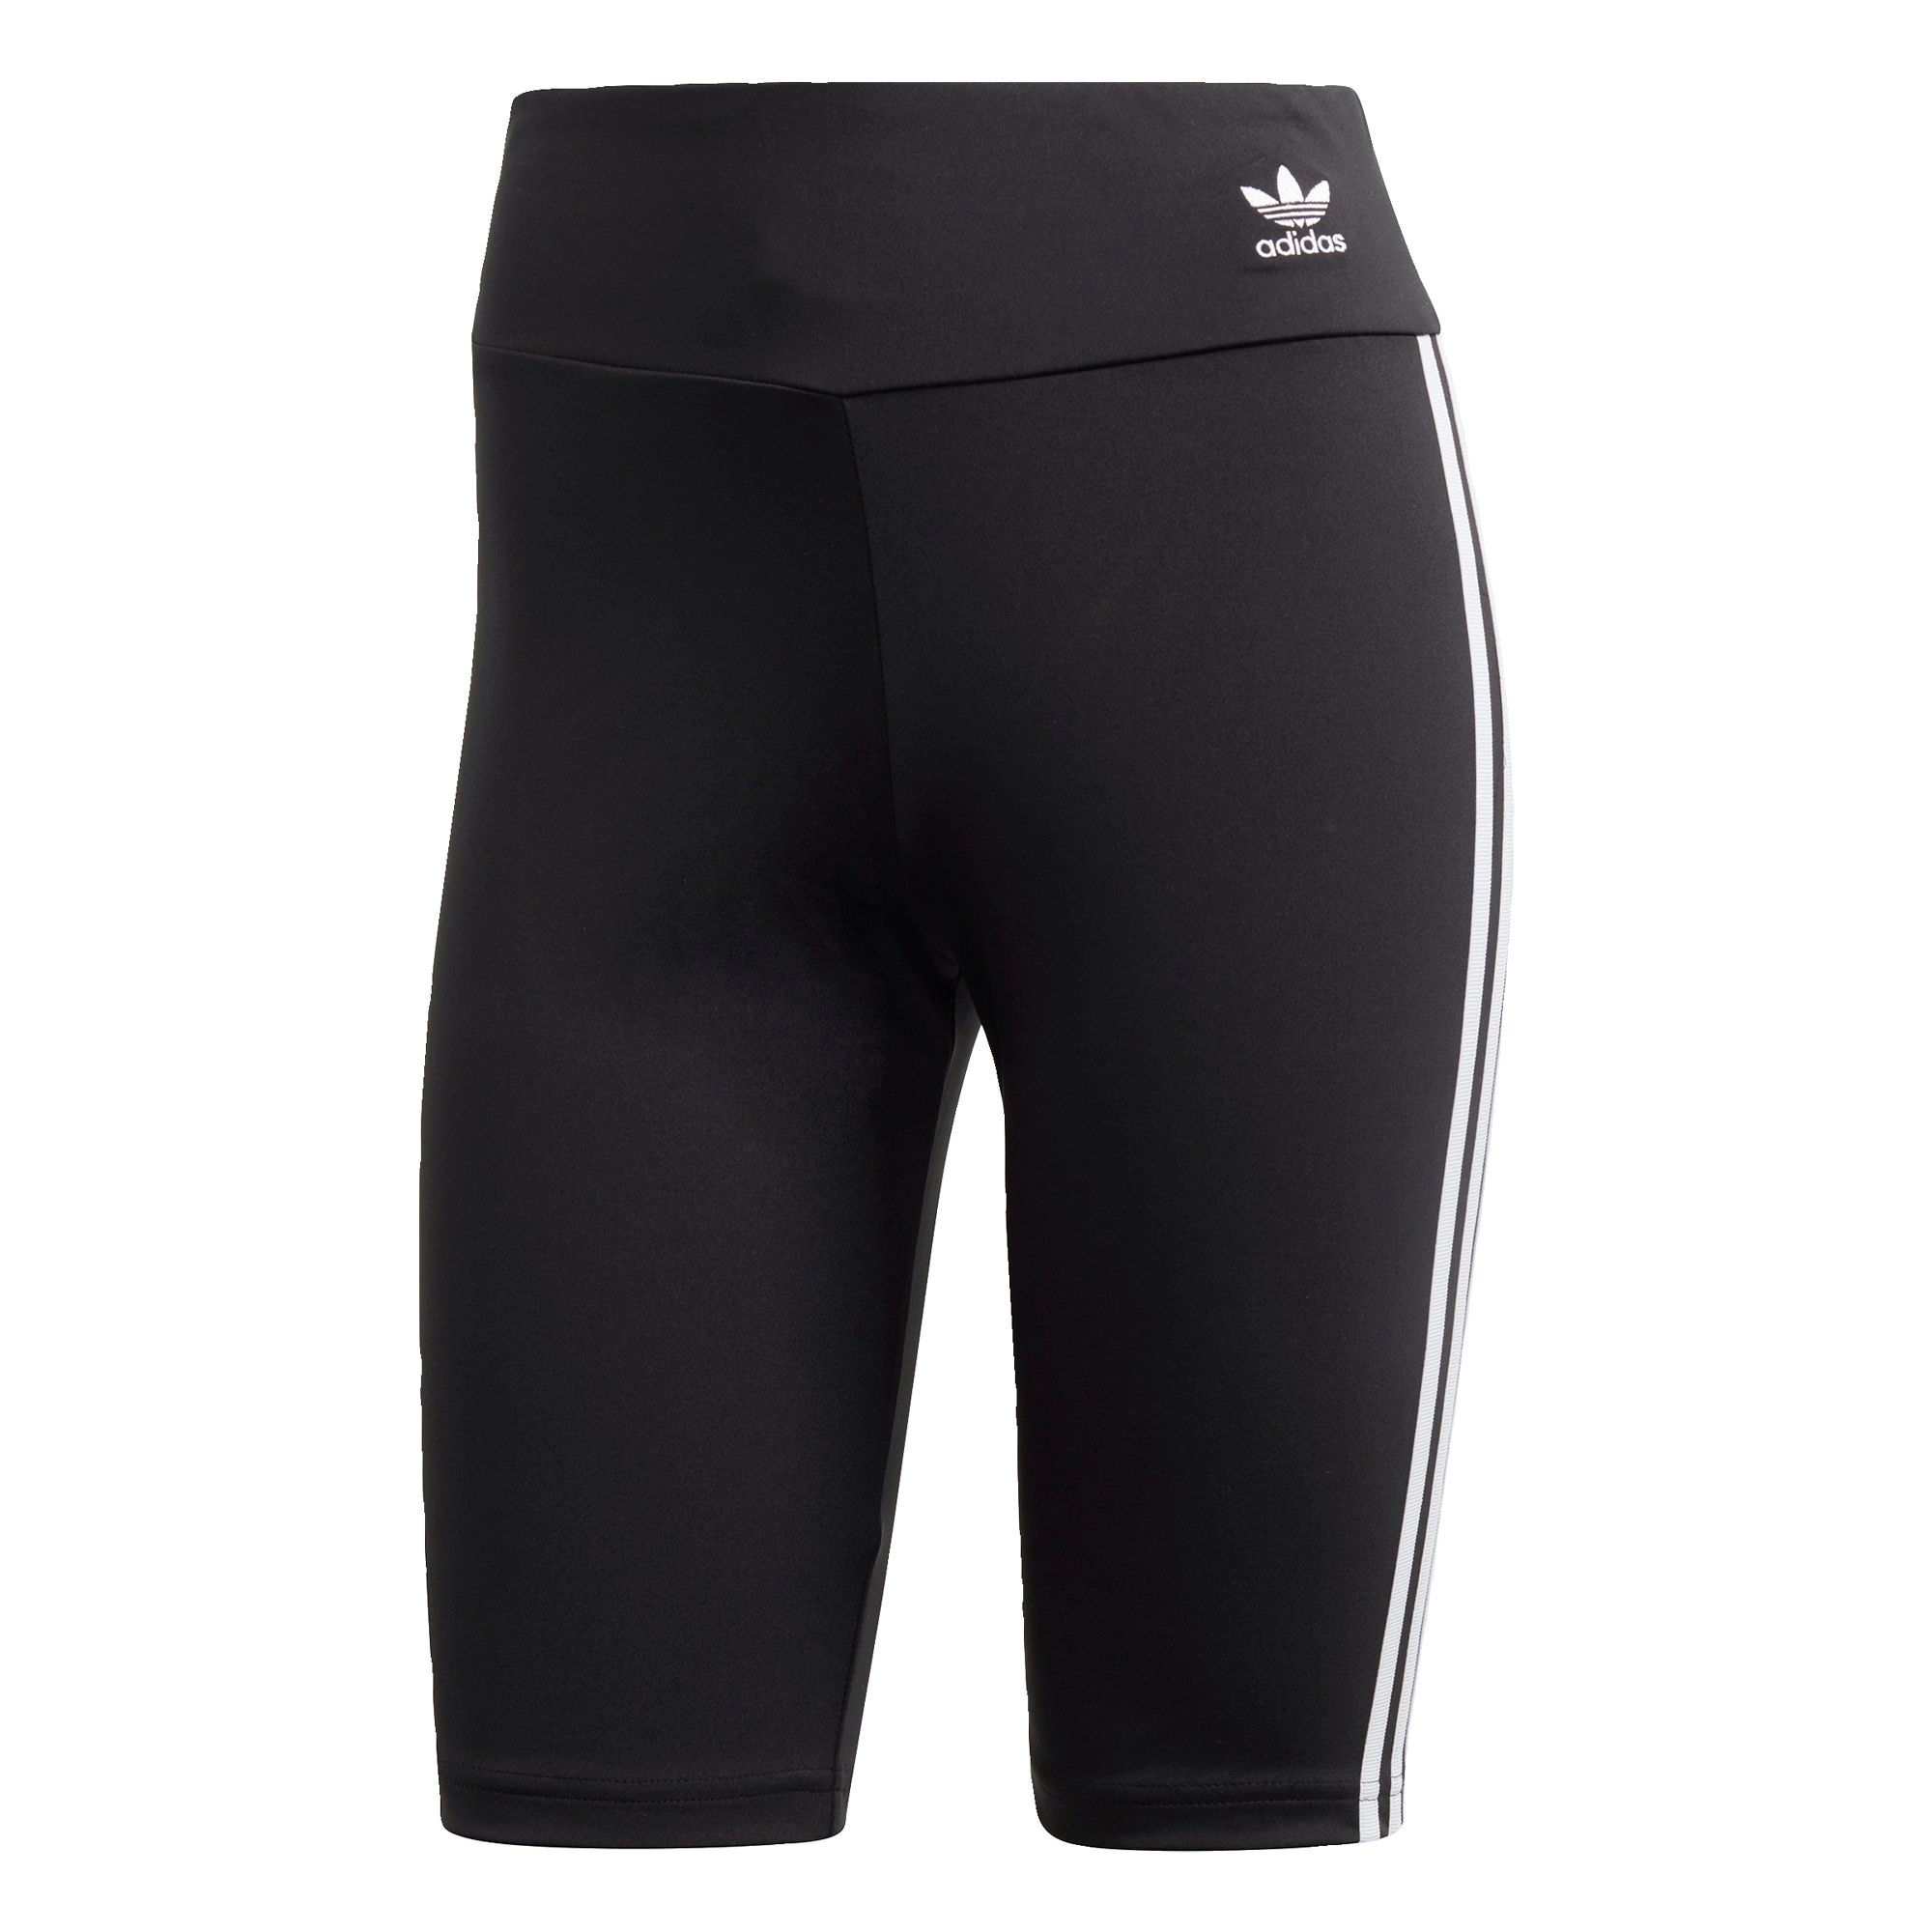 Shorts | Bekleidung > Homewear > Leggings | adidas Originals